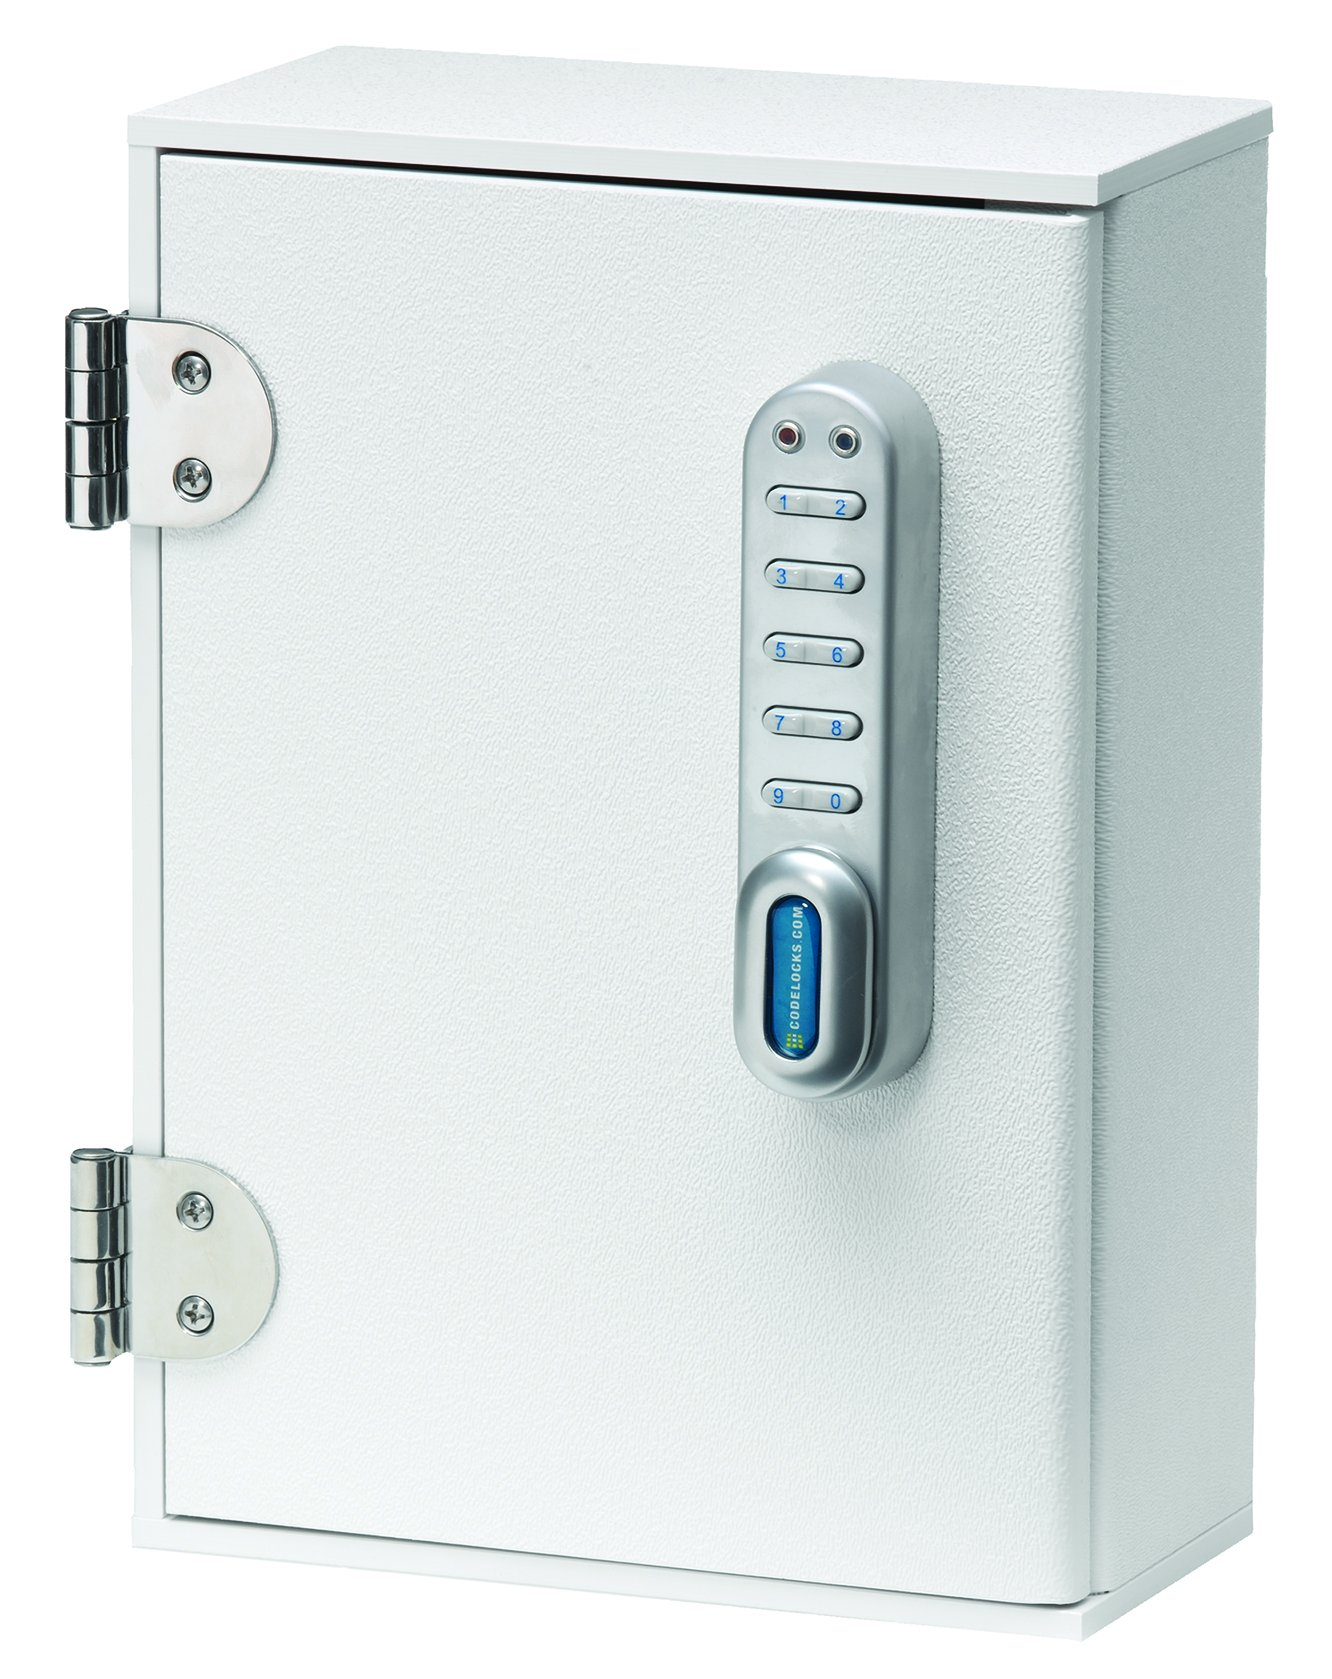 Omnimed  291640 Small ABS Patient Security Cabinet by Omnimed (Image #1)